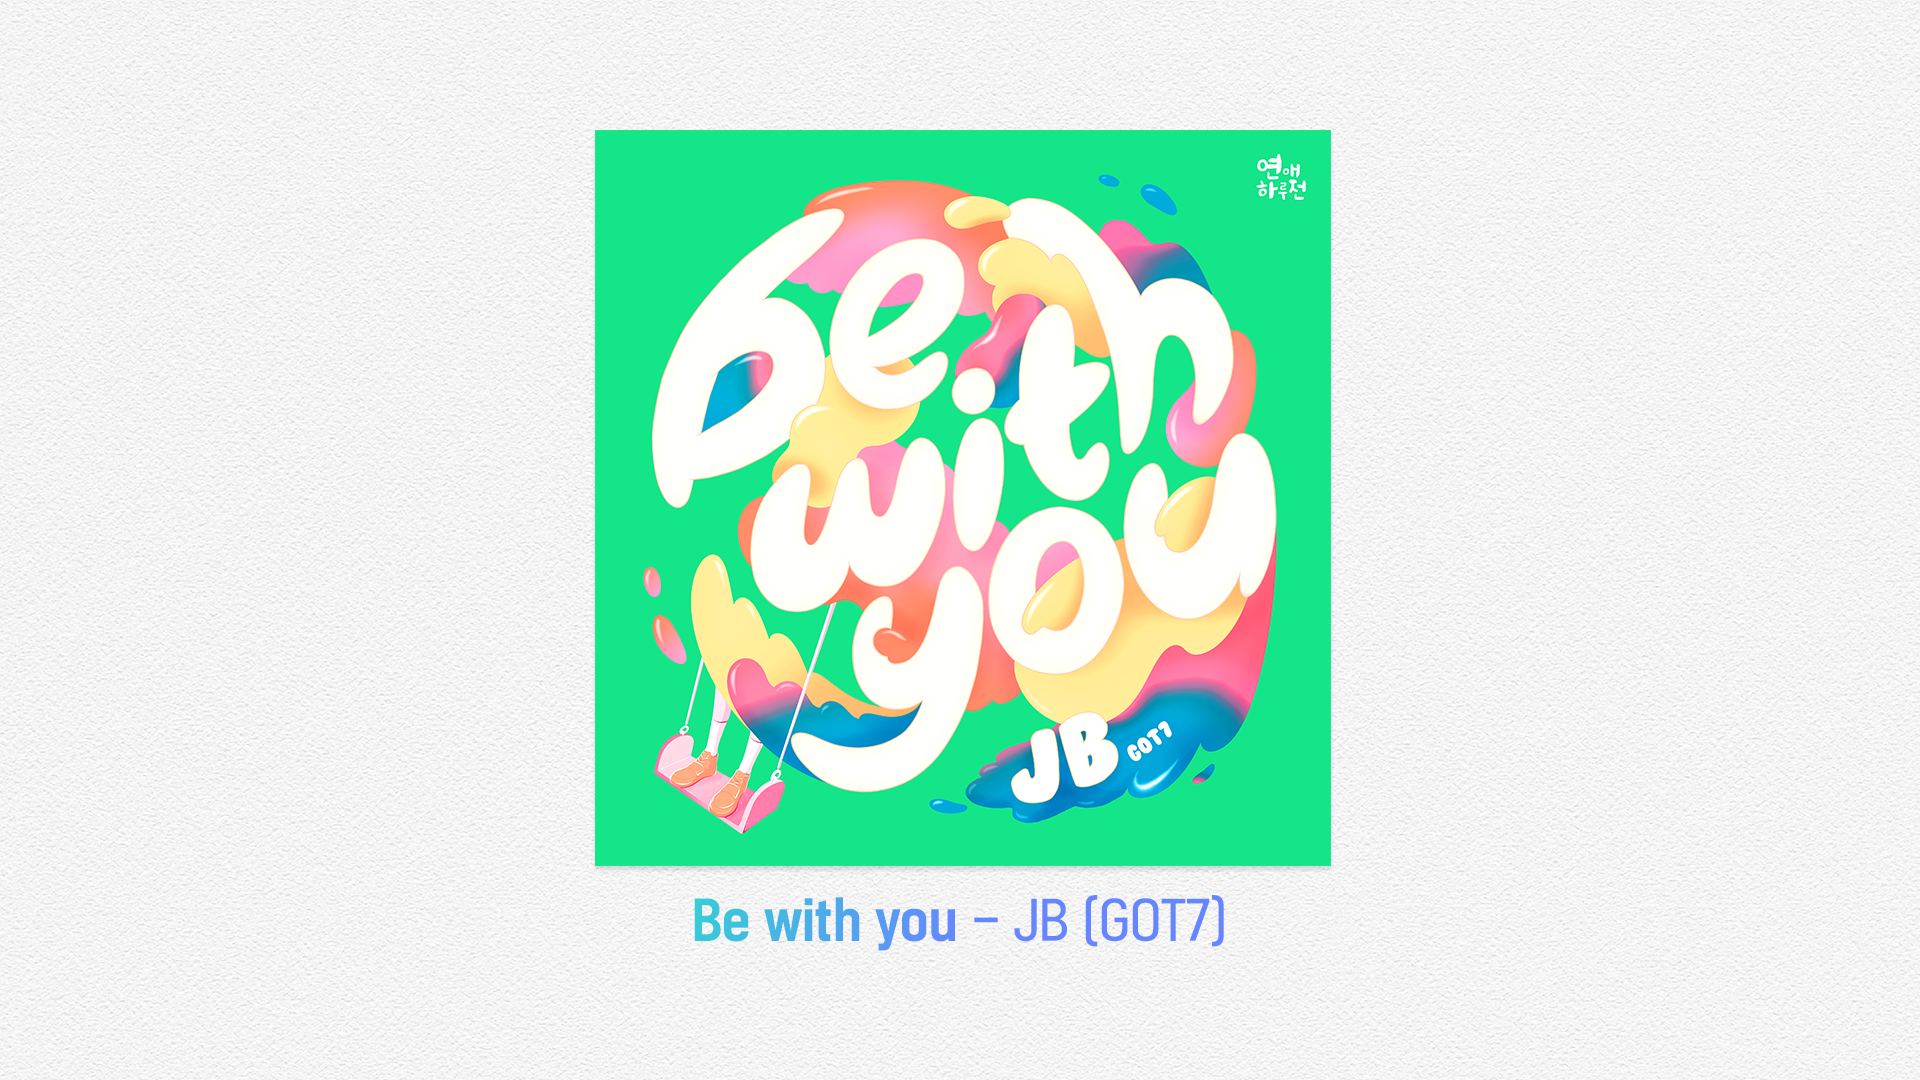 [연애하루전 OST] Be with you - JB(GOT7)